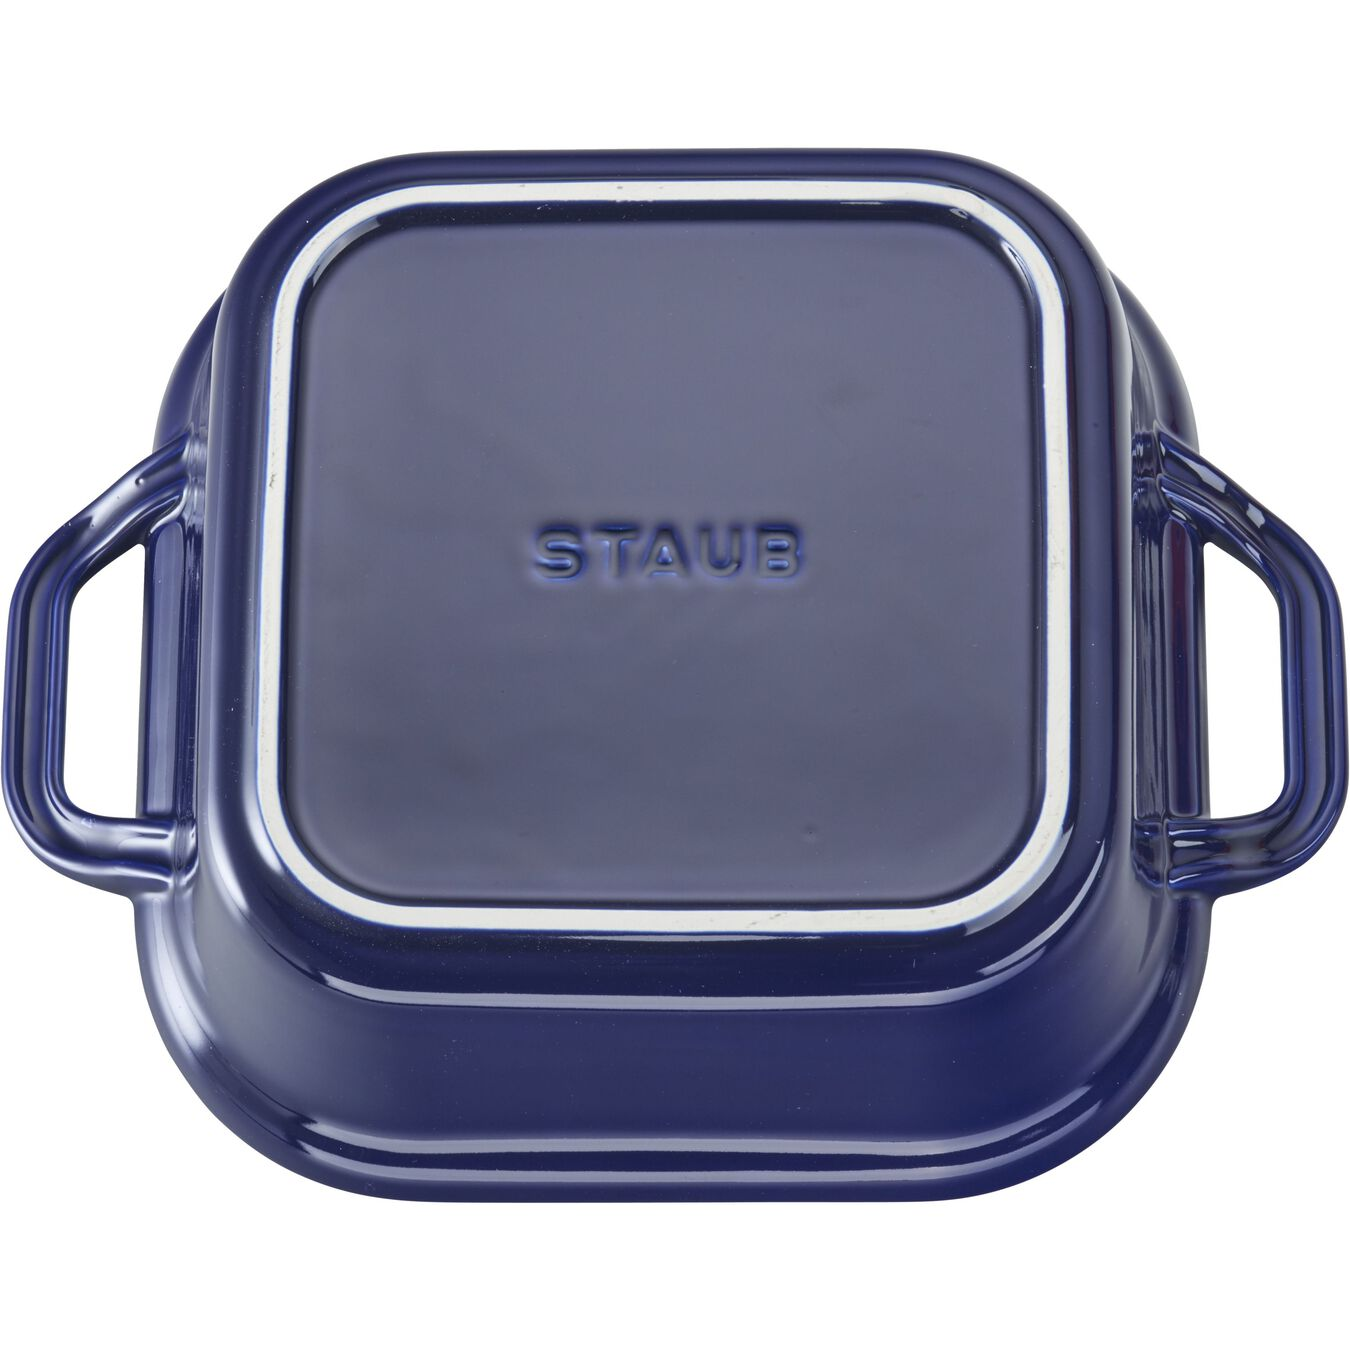 9-inch X 9-inch Square Covered Baking Dish - Dark Blue,,large 3